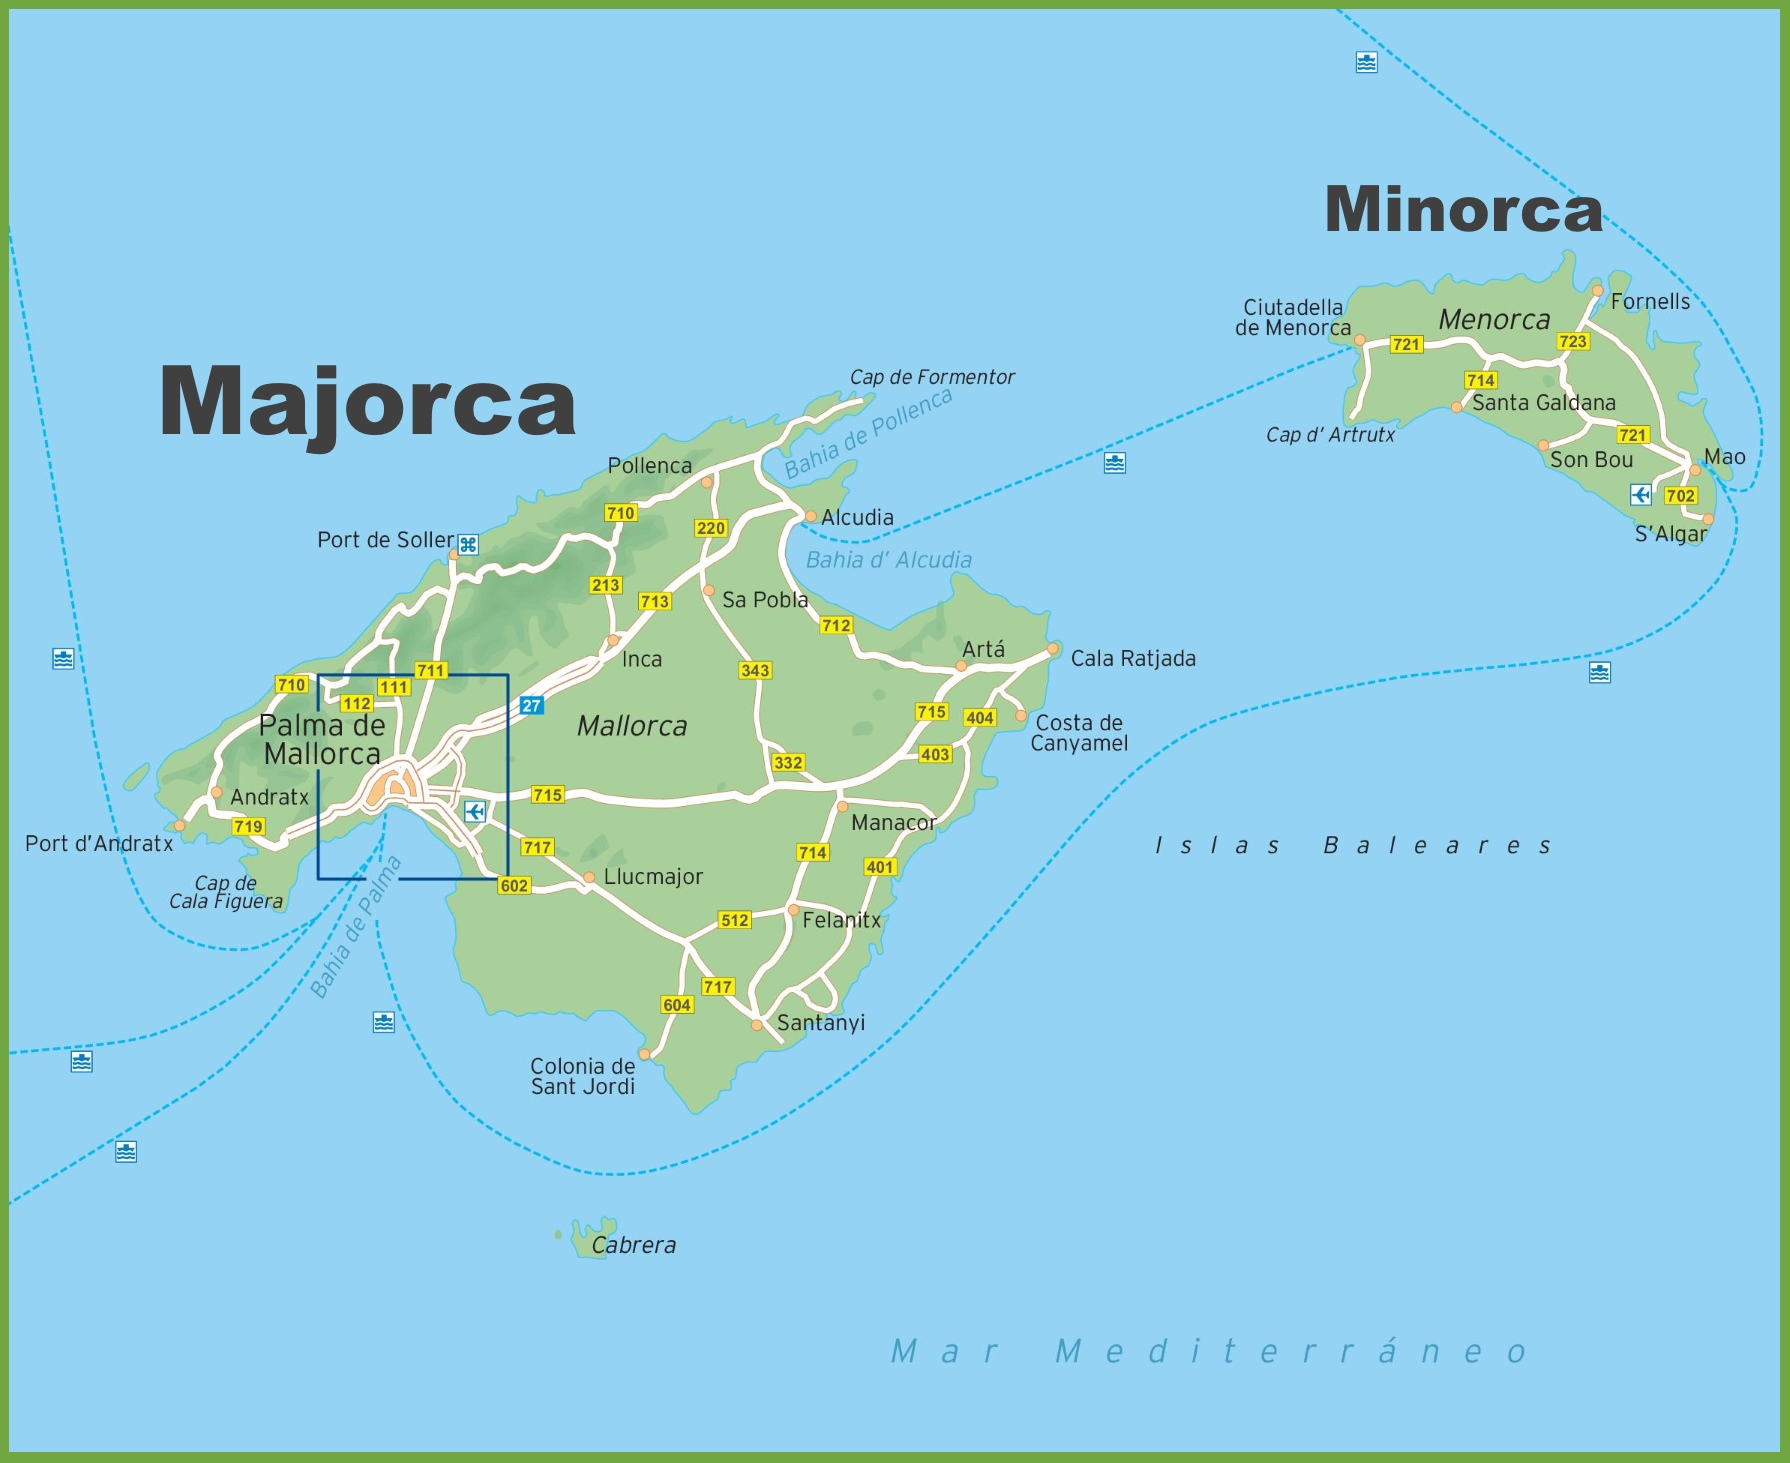 Majorca Spain Map Map of Majorca and Minorca